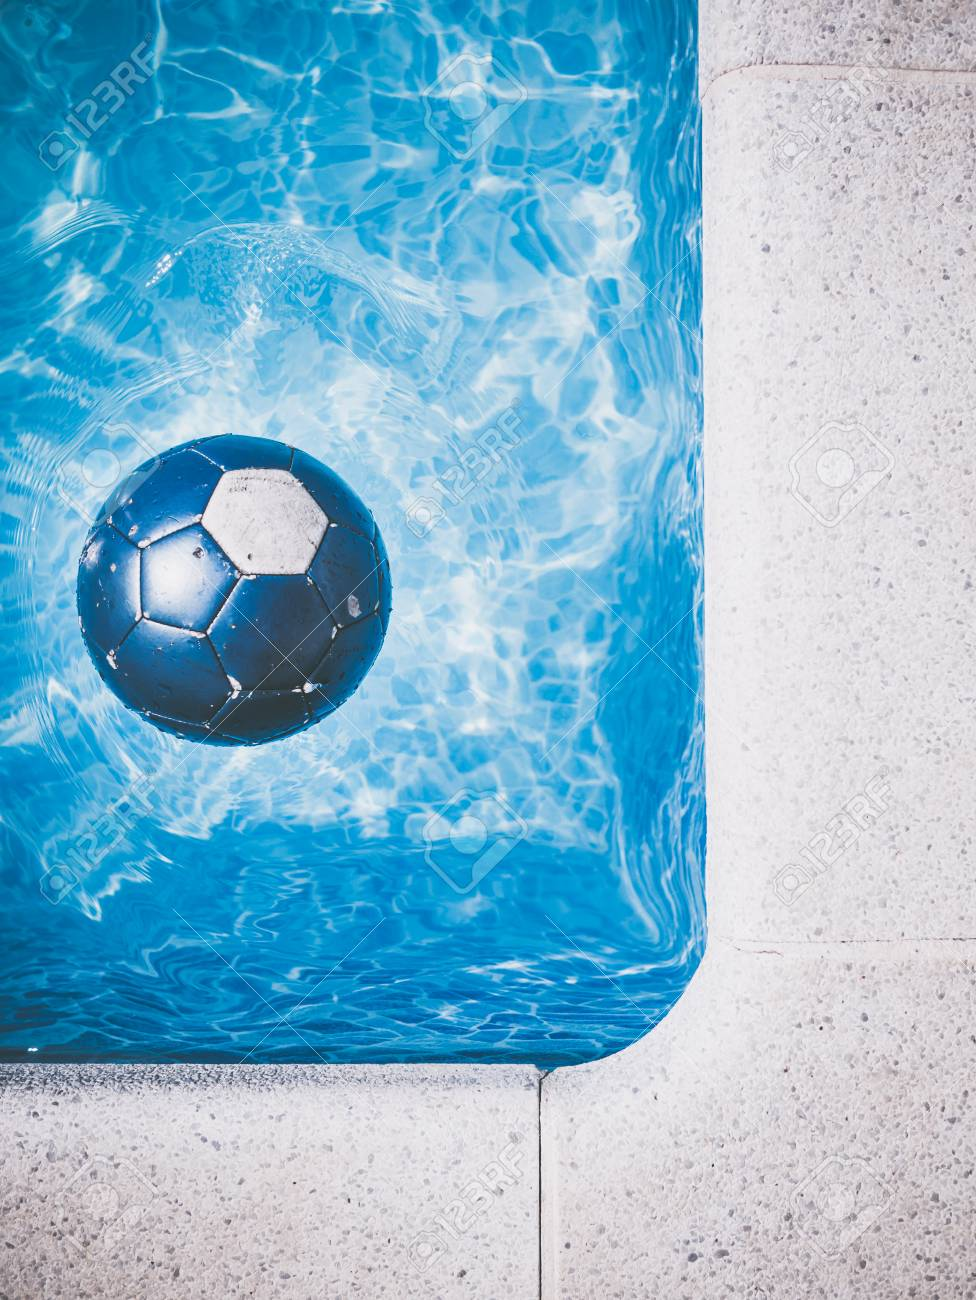 blue ball in a swimming pool Stock Photo - 50079437 4e363510f10ad